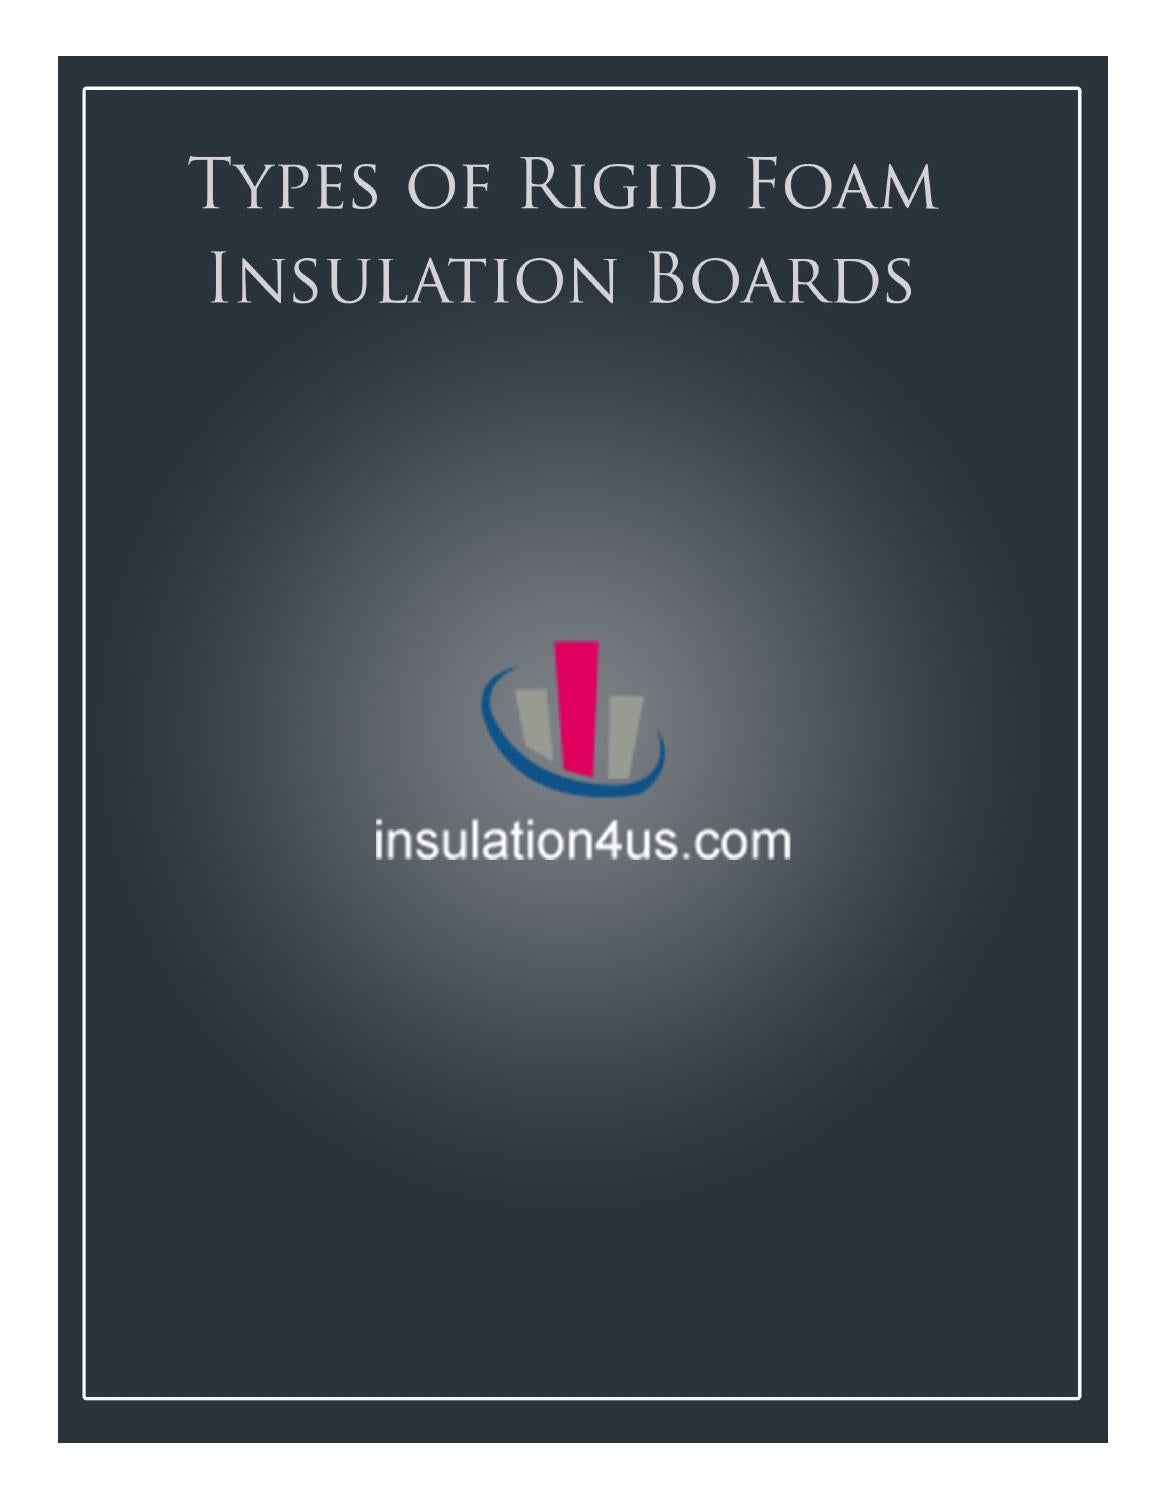 Rigid Insulation Types Types Of Rigid Foam Insulation Boards By Insulation4us Issuu